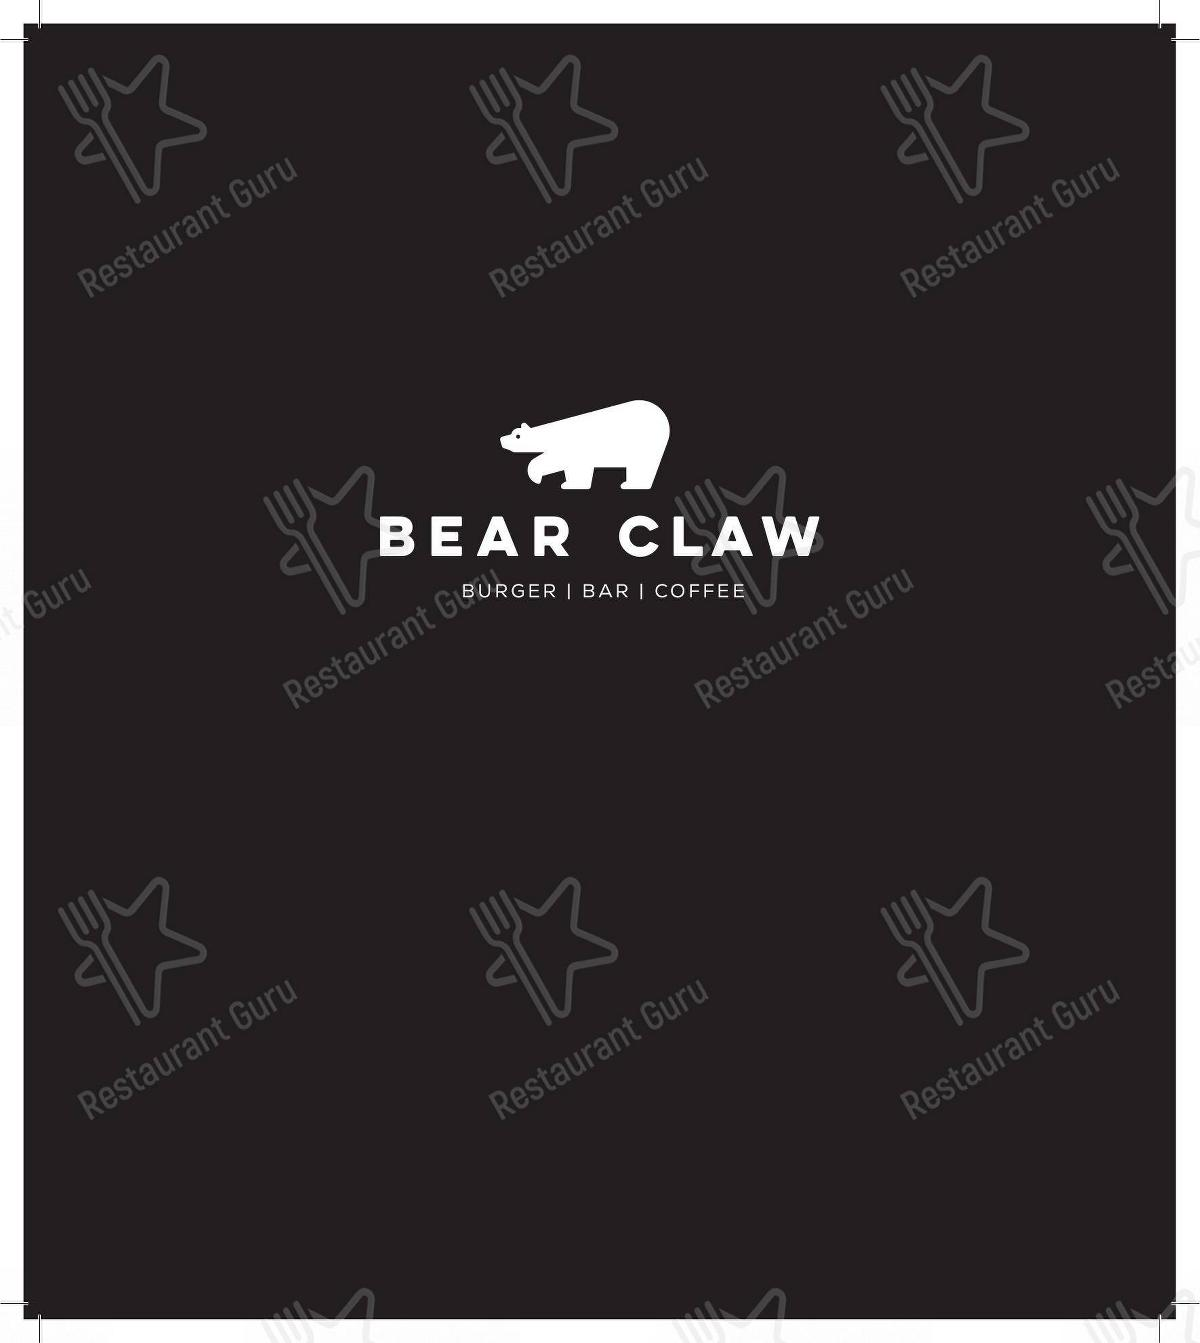 Mira la carta de Bear Claw